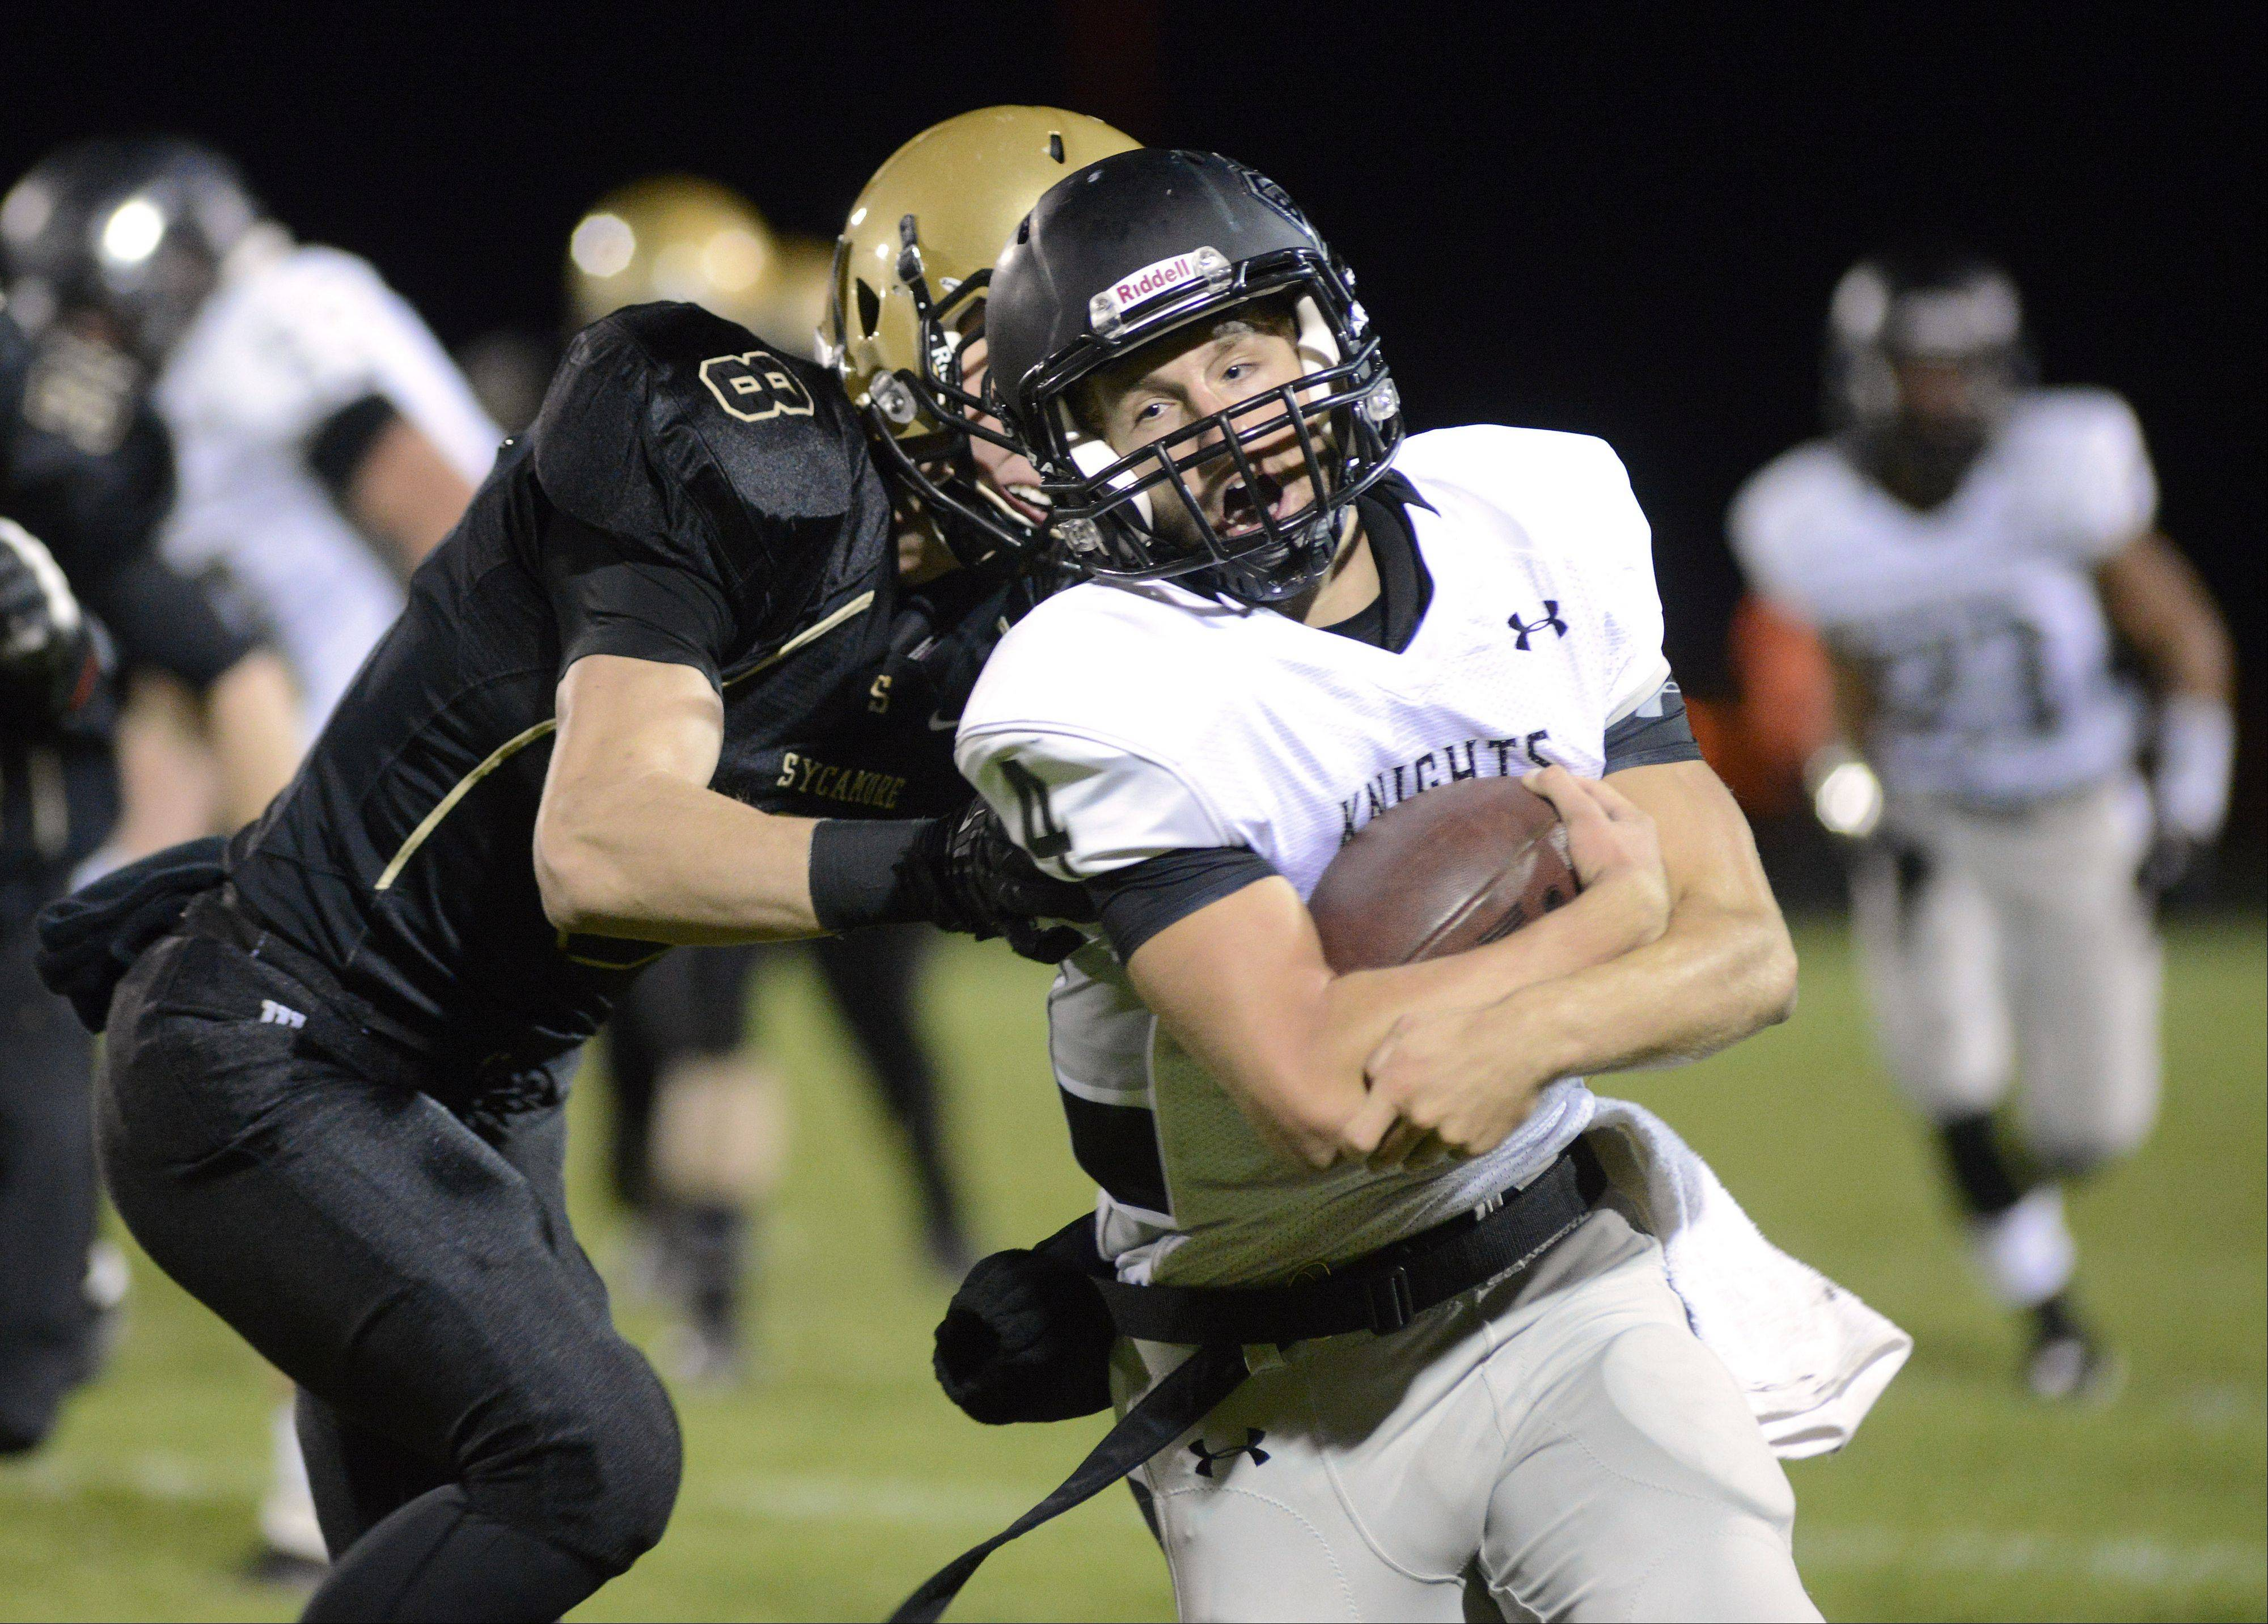 Images: Kaneland vs. Sycamore football